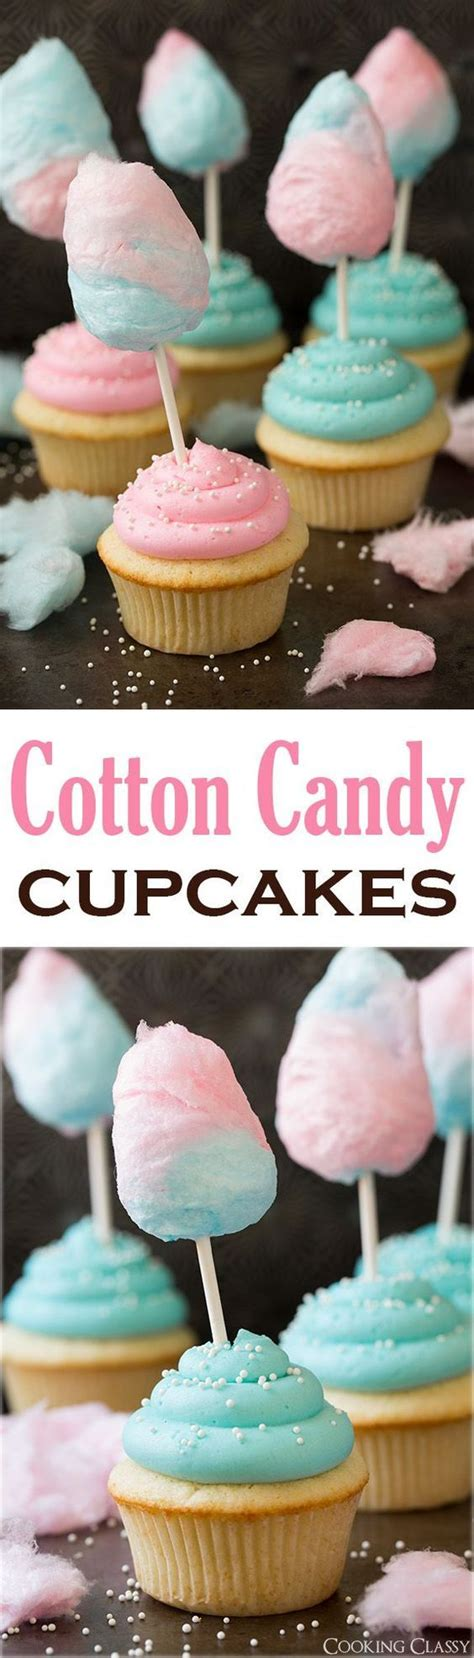 17 cupcake and cake recipes 17 best images about recipes to cook on pinterest desert ideas spirals and red velvet cakes